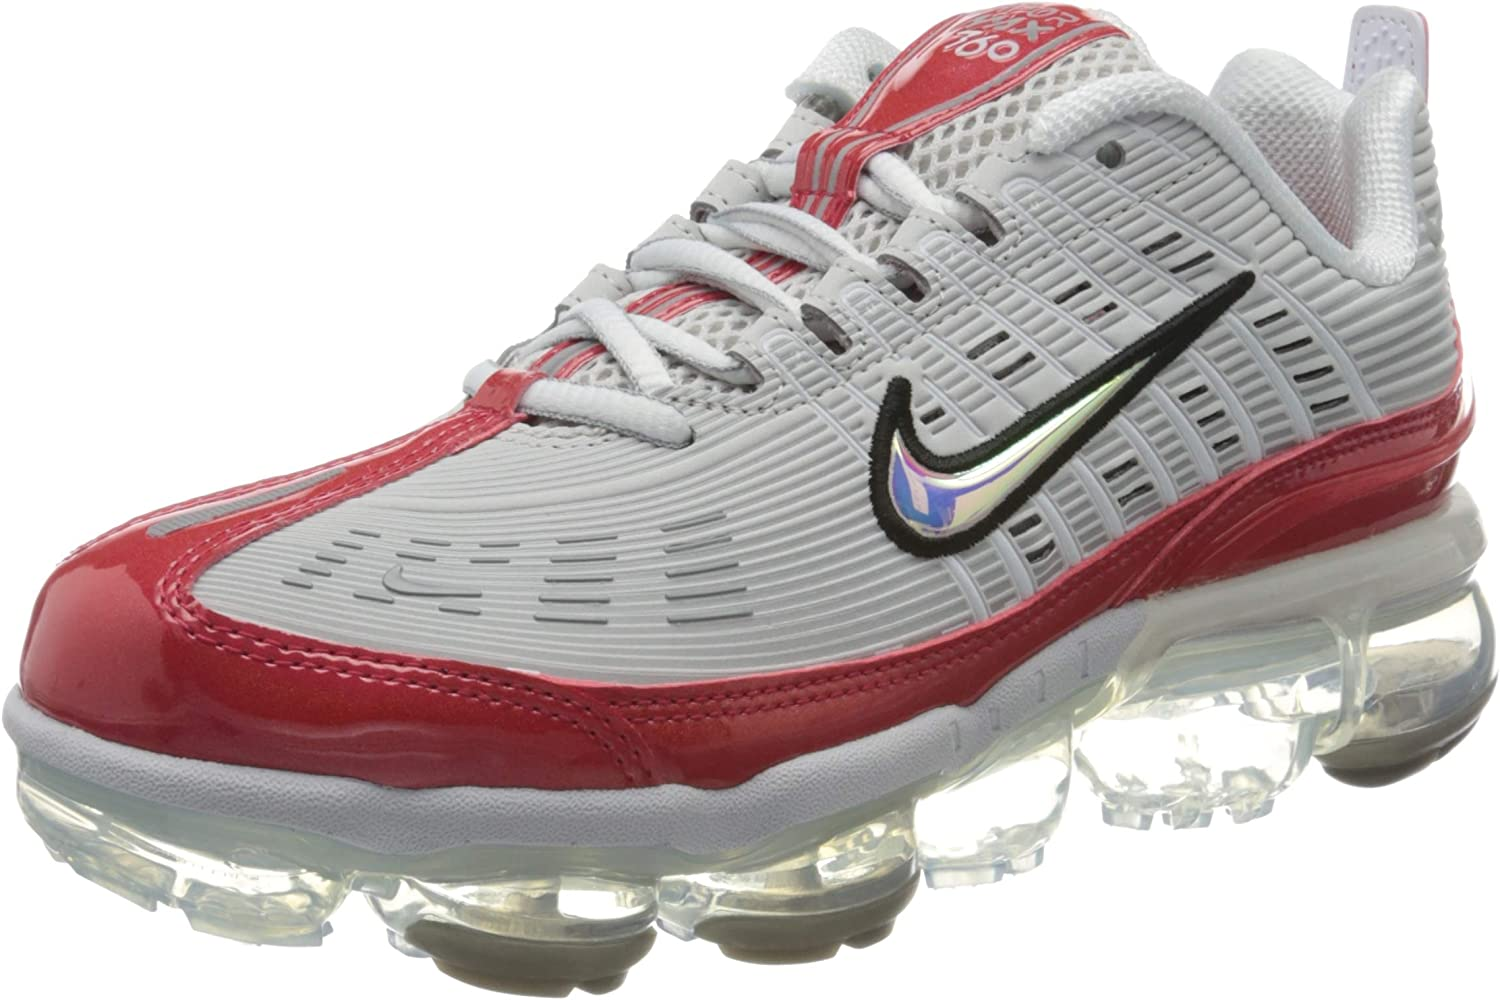 Nike Women's Race Running us Shoe 7.5 Max Max 73% OFF 64% OFF